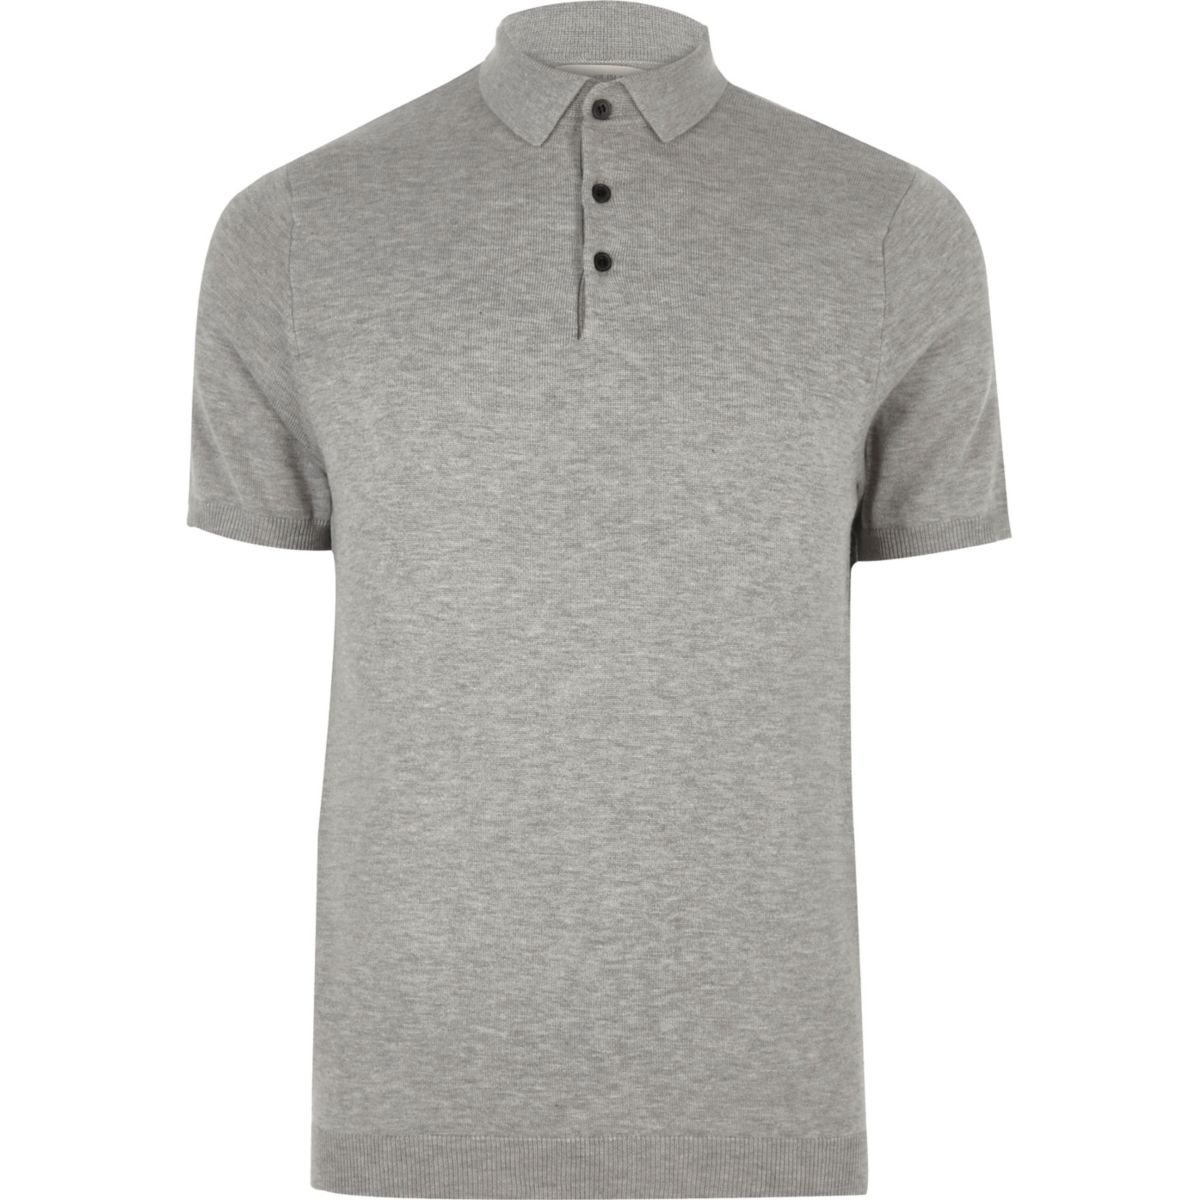 Grey slim fit polo shirt polo shirts sale men for Polo shirts for men on sale